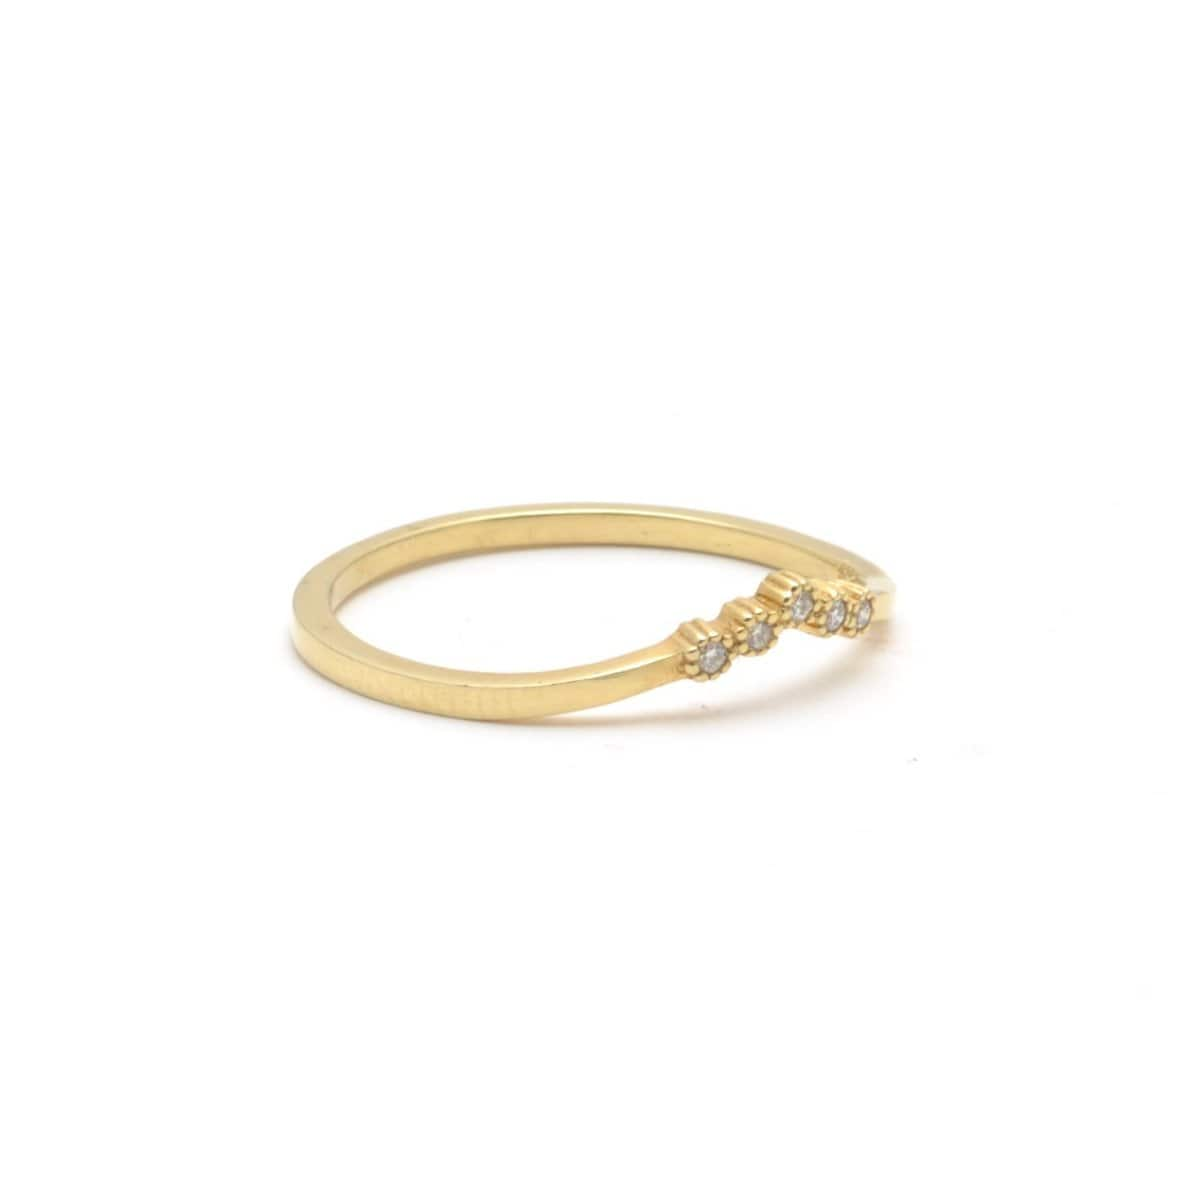 Suneera diamond yellow gold ring or wedding band